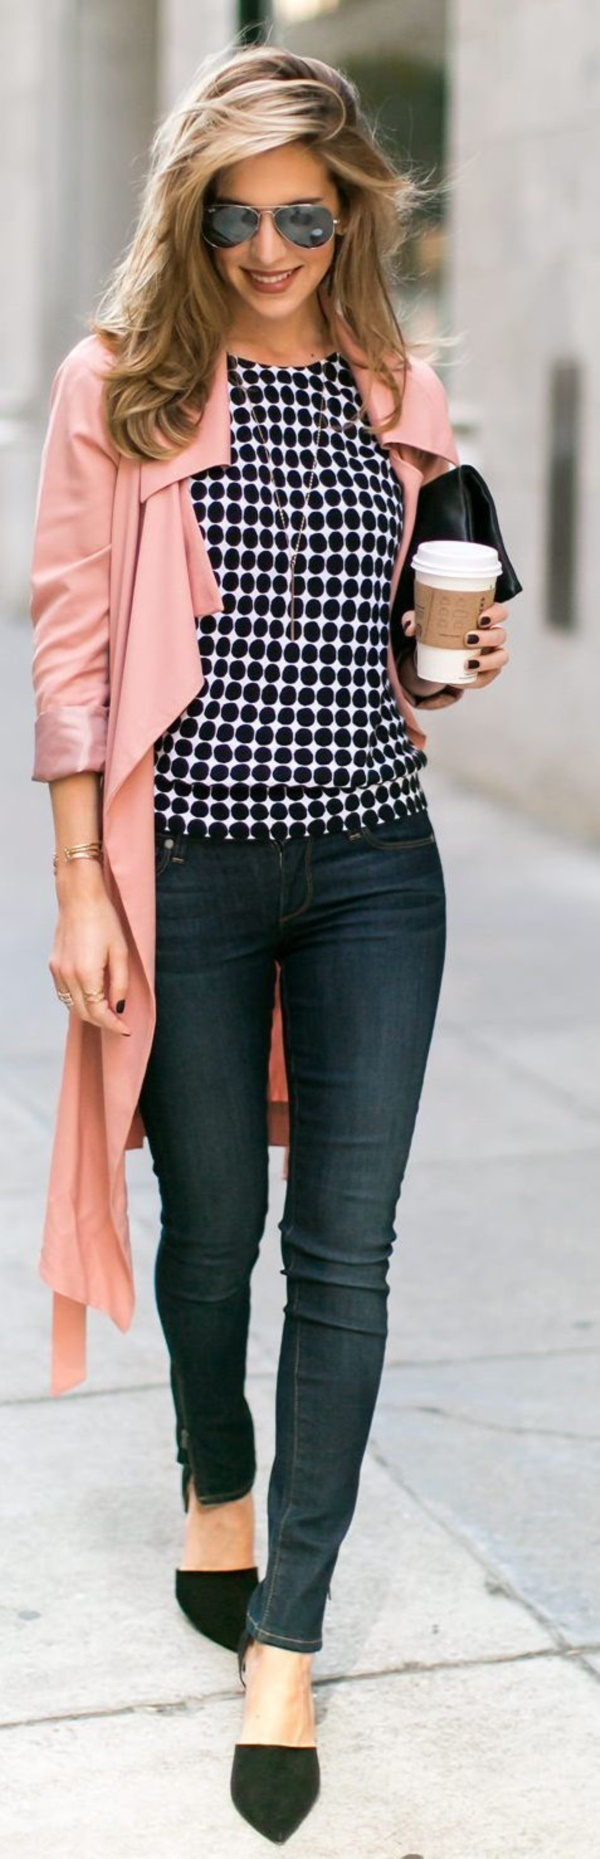 Street Style Fashion Outfits for Women (2)